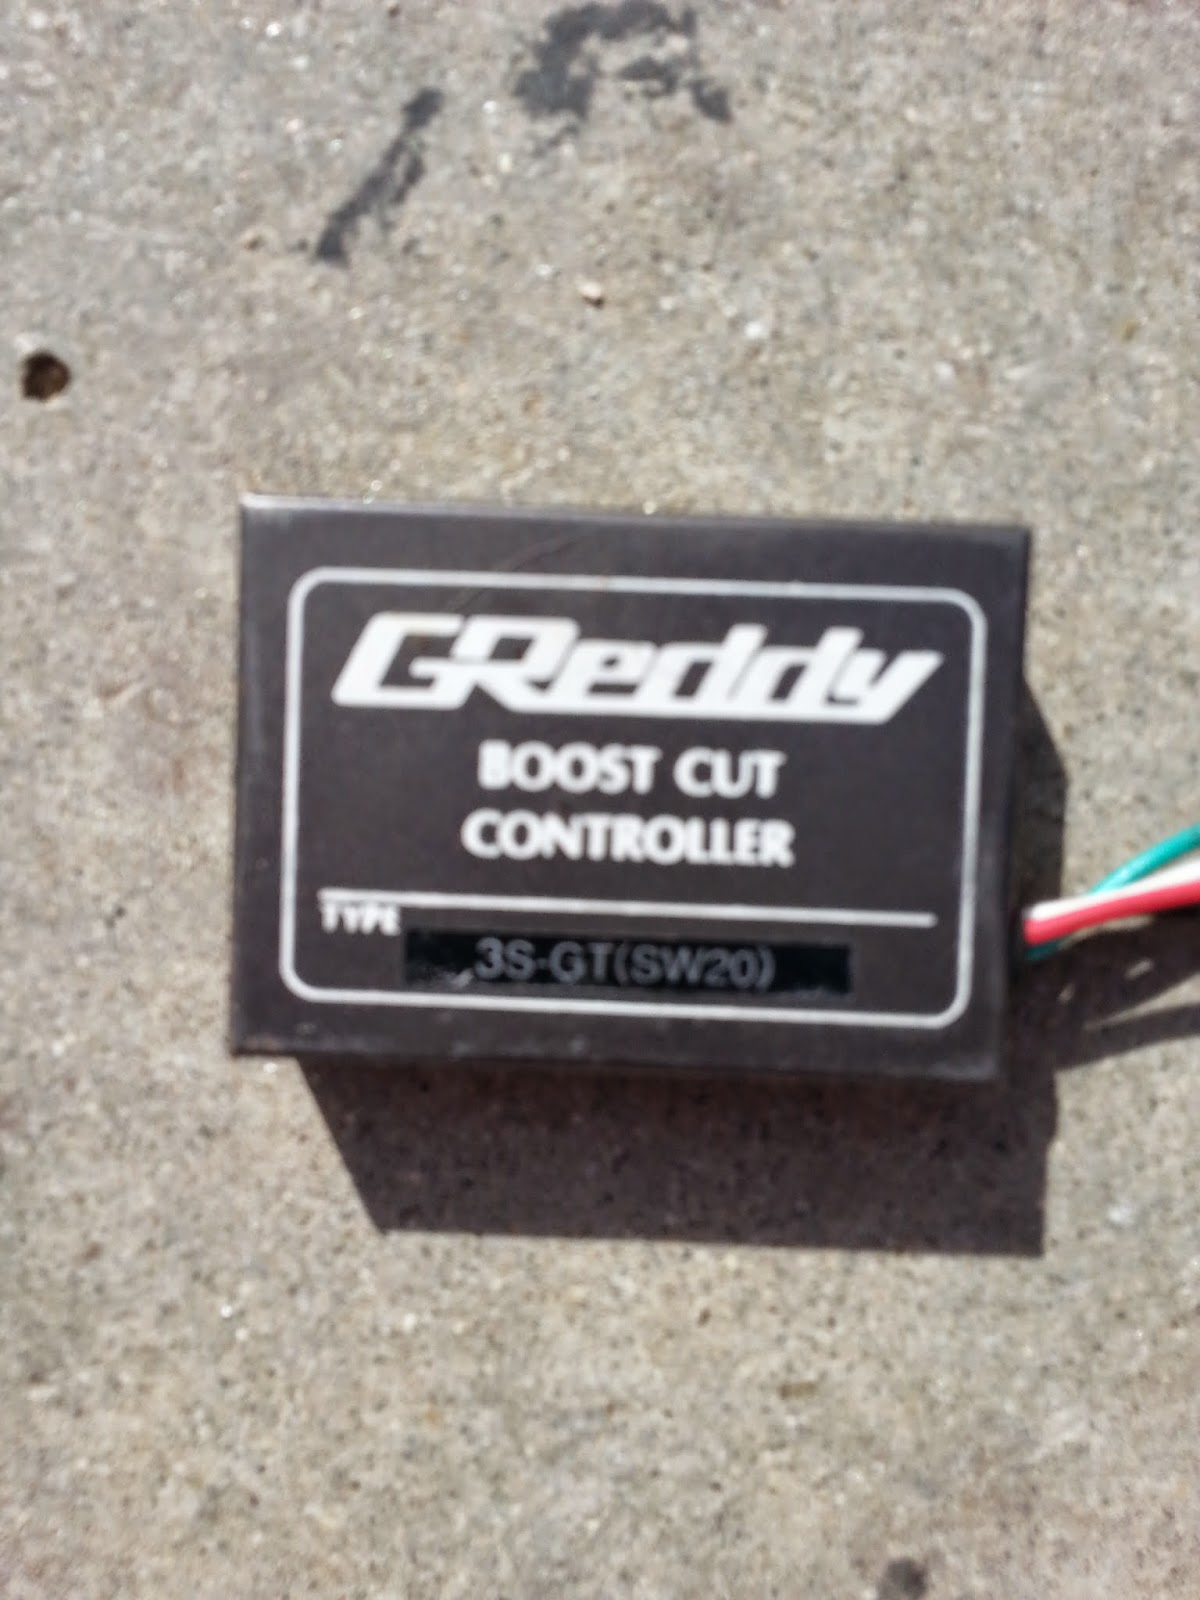 Car And Writer Motoring Evolution Diy Fix How To Install A Greddy Wiring Harness Boost Cut Controller Bcc On 2jz Gte With Vvt I Lexus Gs300 Toyota Aristo